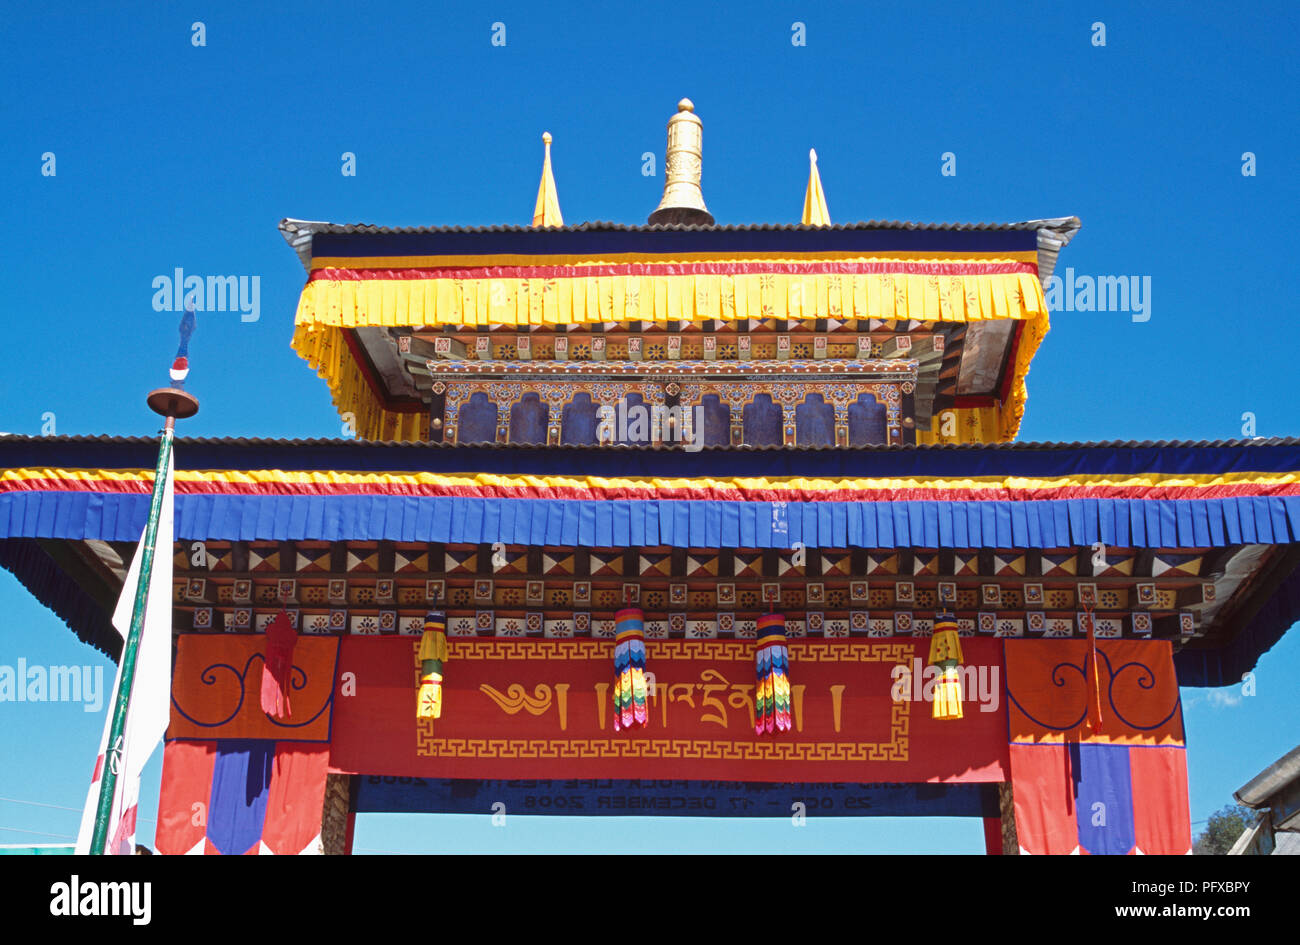 Entrance gate to the National Museum in Paro, Bhutan - Stock Image